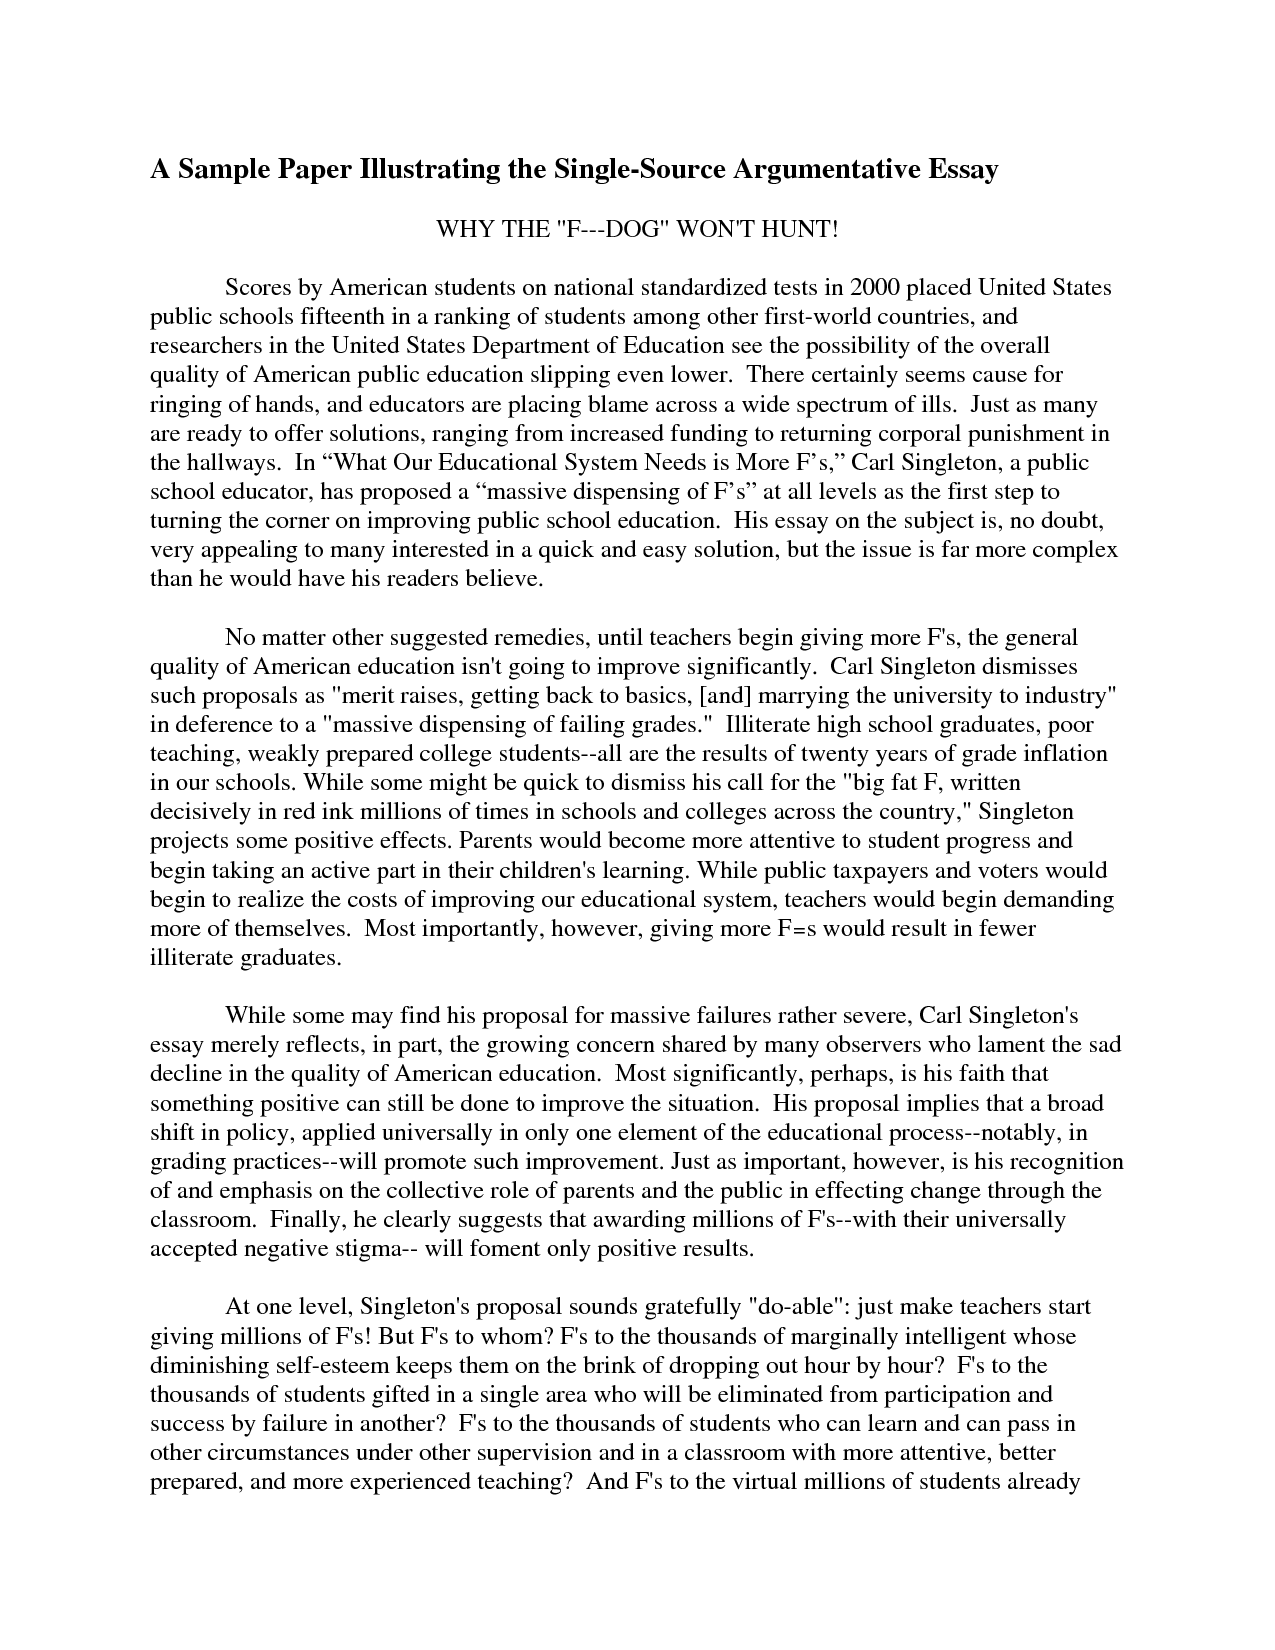 015 Essay Example How To Conclude An Argumentative Persuasive Examples Ideas Of Writing Essays With Additional Top Teach Me Write A Good Conclusion Paragraph For Step By Ppt Middle School Full